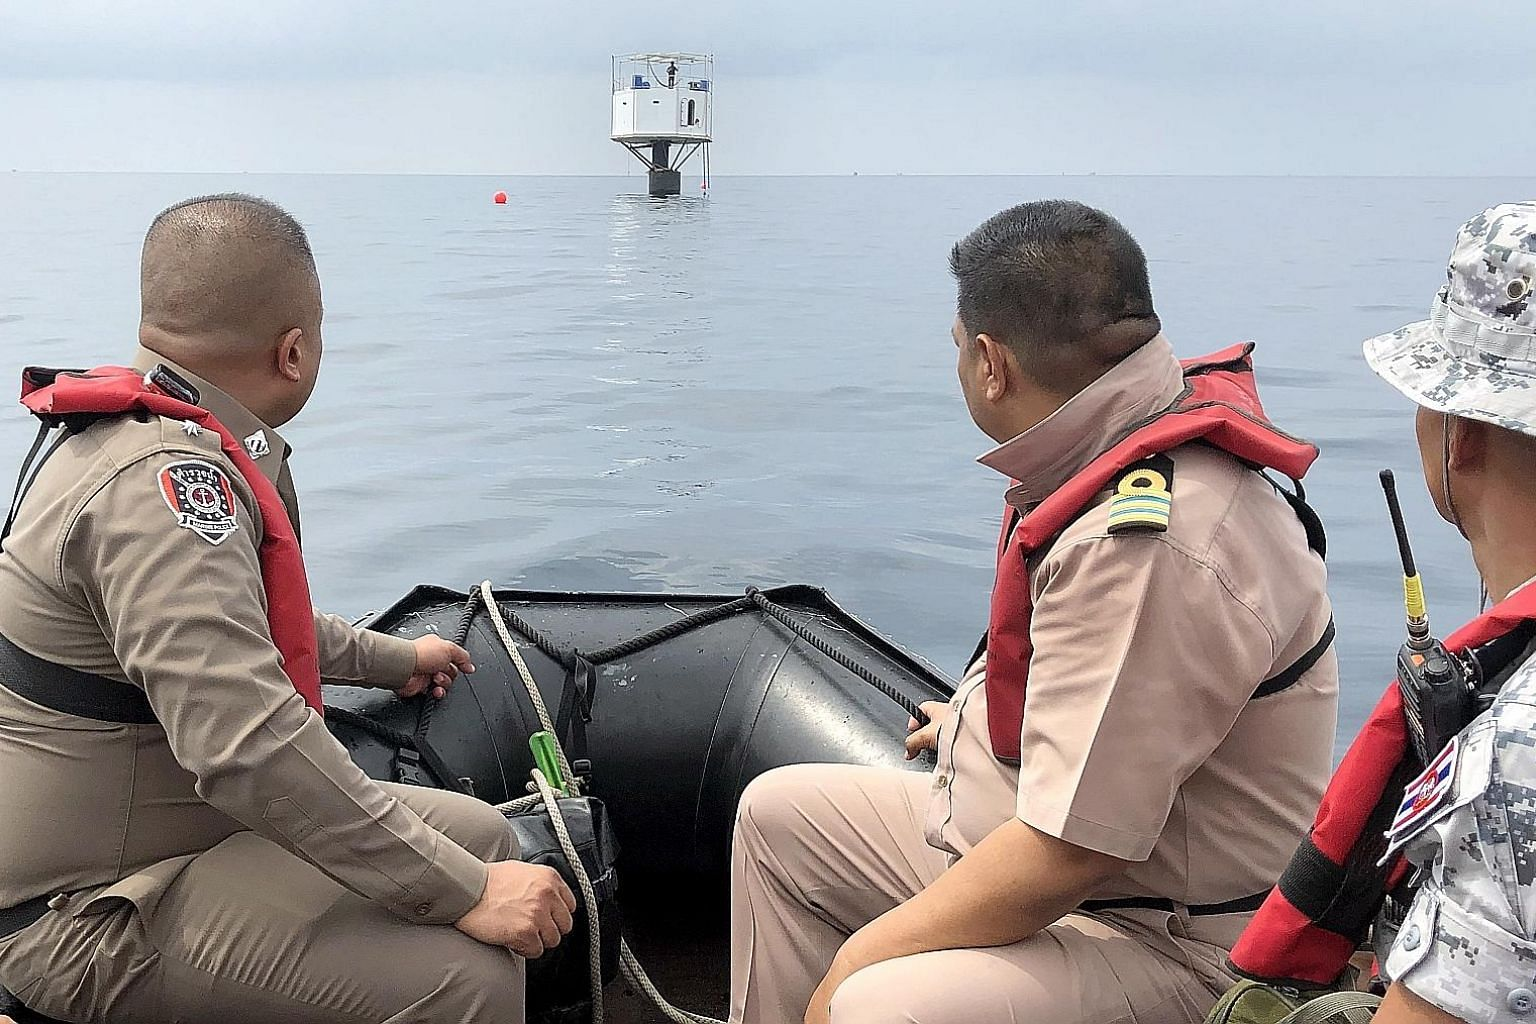 Thailand's Third Naval Area Command officers and Marine policemen observing a floating home in the Andaman Sea, some 12 nautical miles off the coast of Phuket. The couple who built the house may face the death penalty.